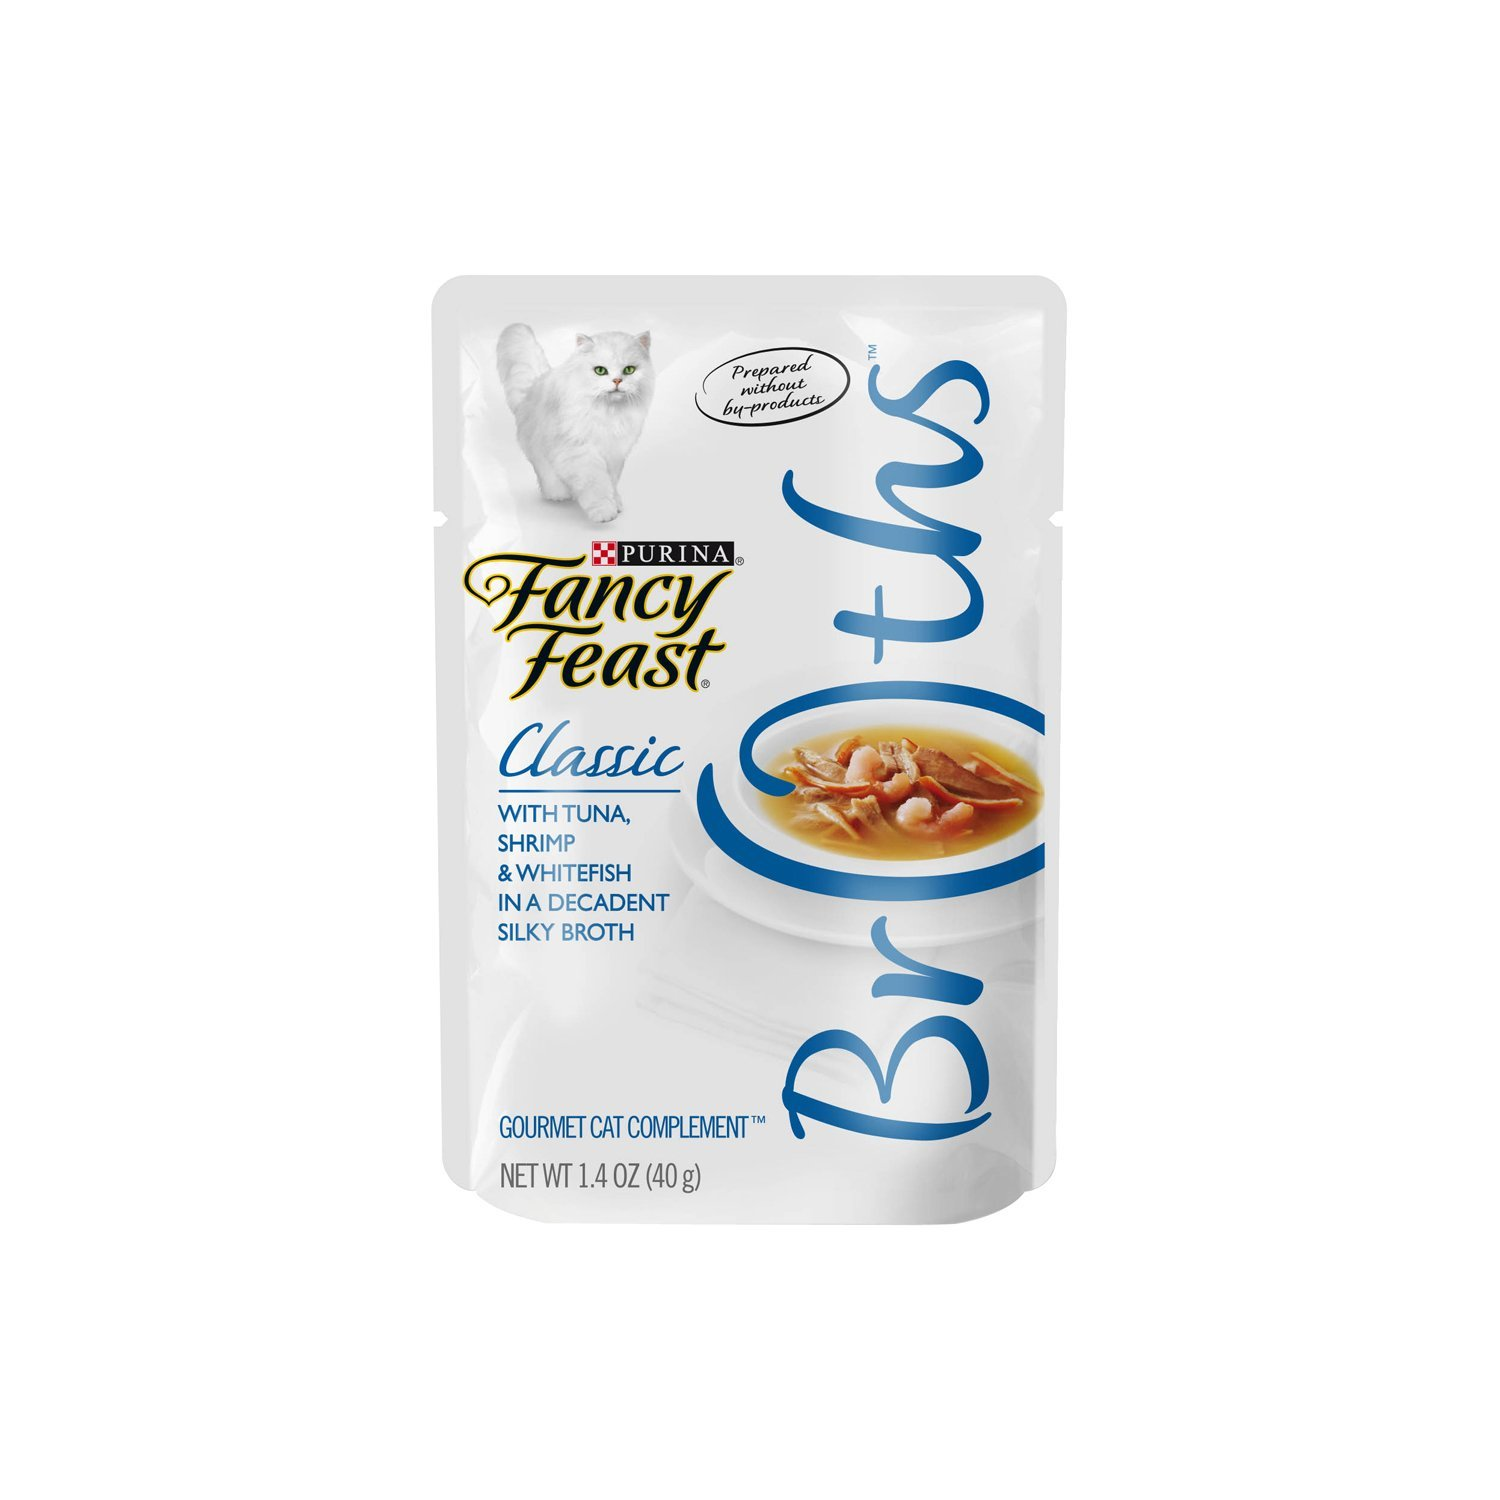 Purina Fancy Feast Broths Classic Gourmet Cat Complement Multipack - (16) 1.